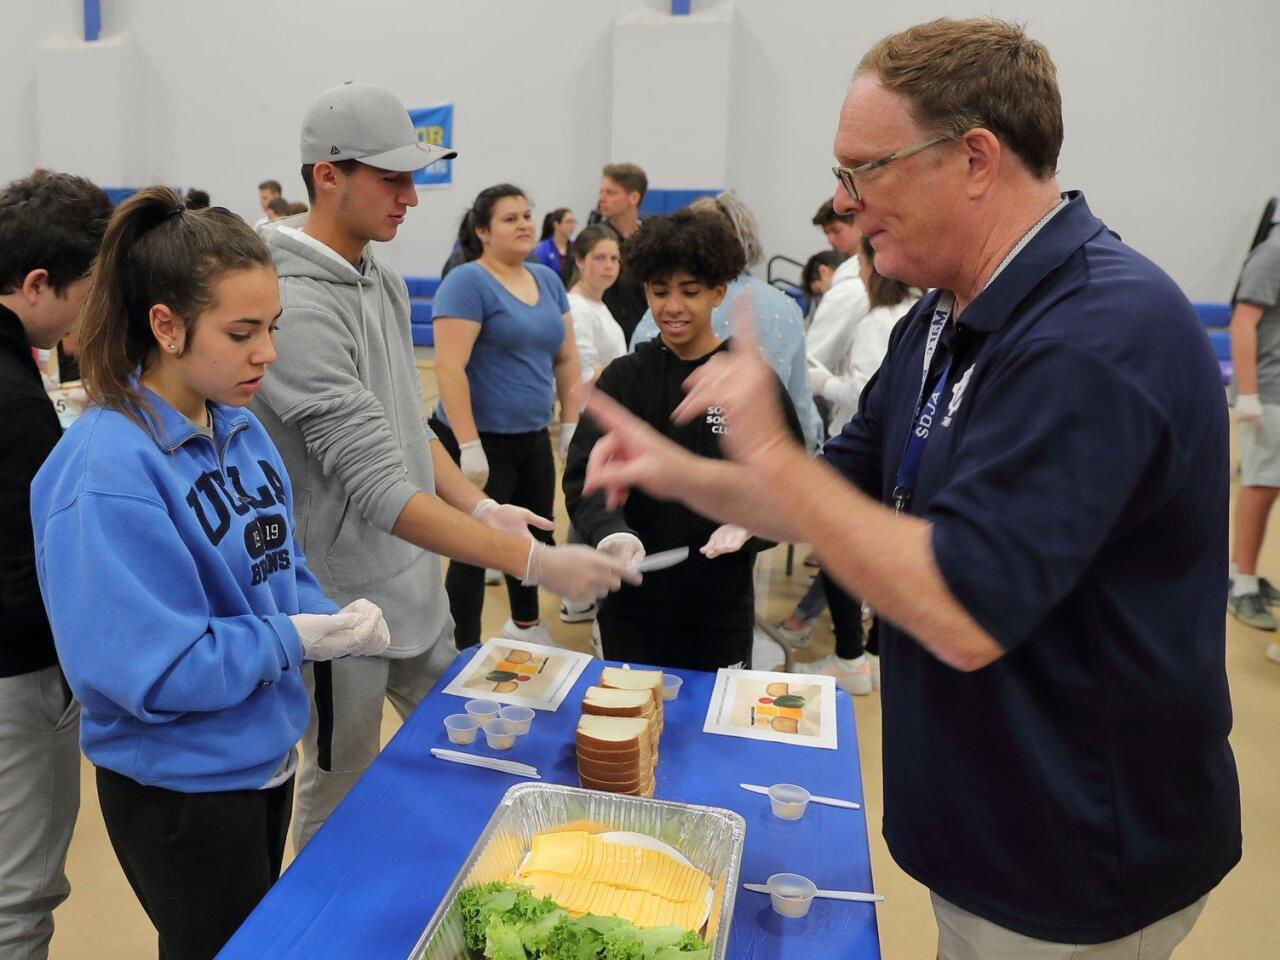 Students attempt to break sandwich-making record while feeding those in need